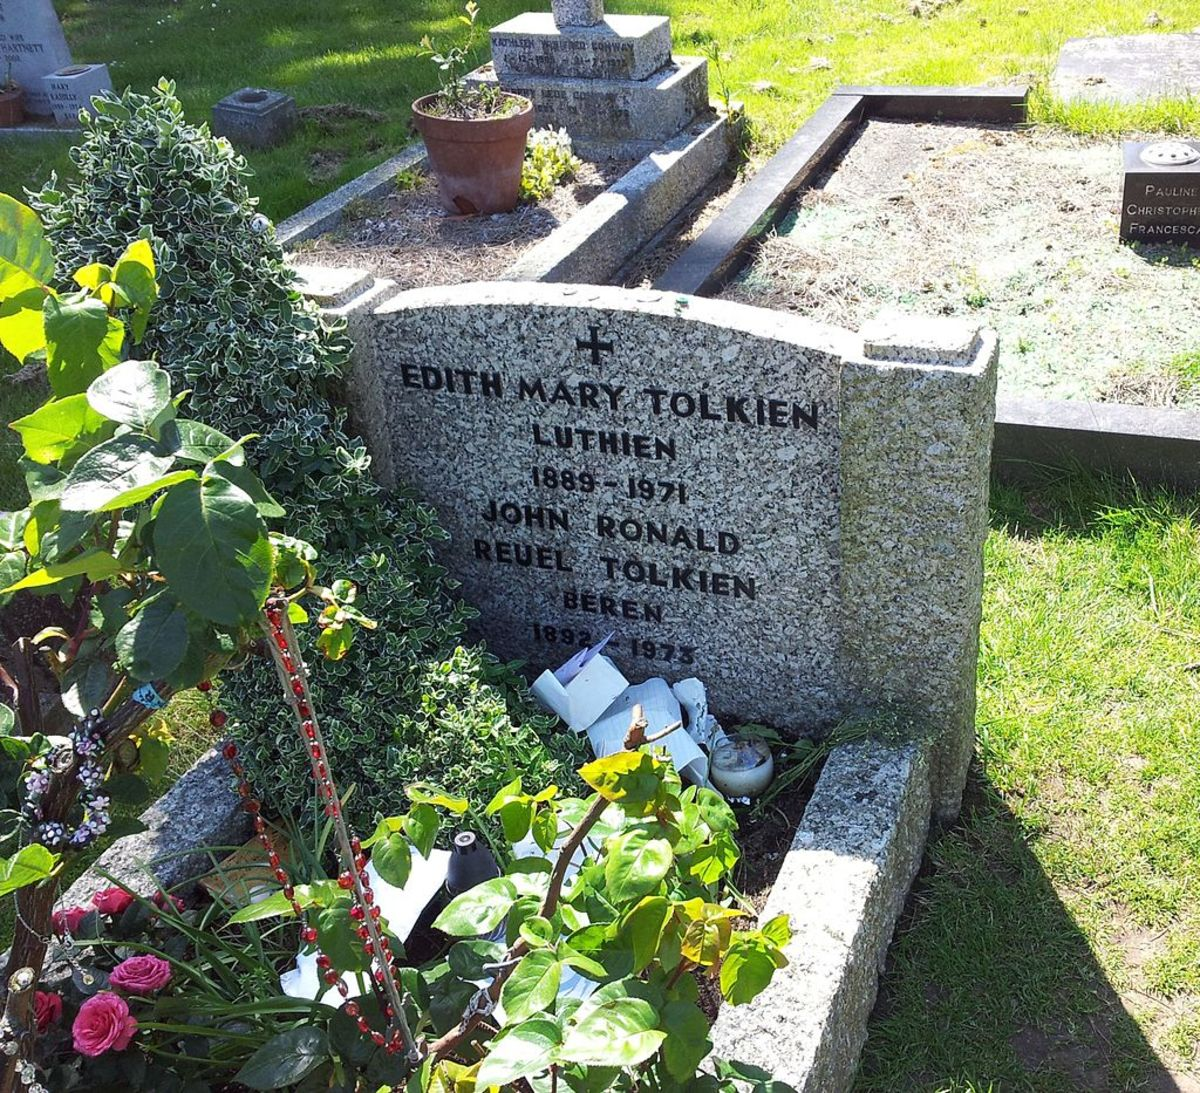 Tolkien and his wife's grave.